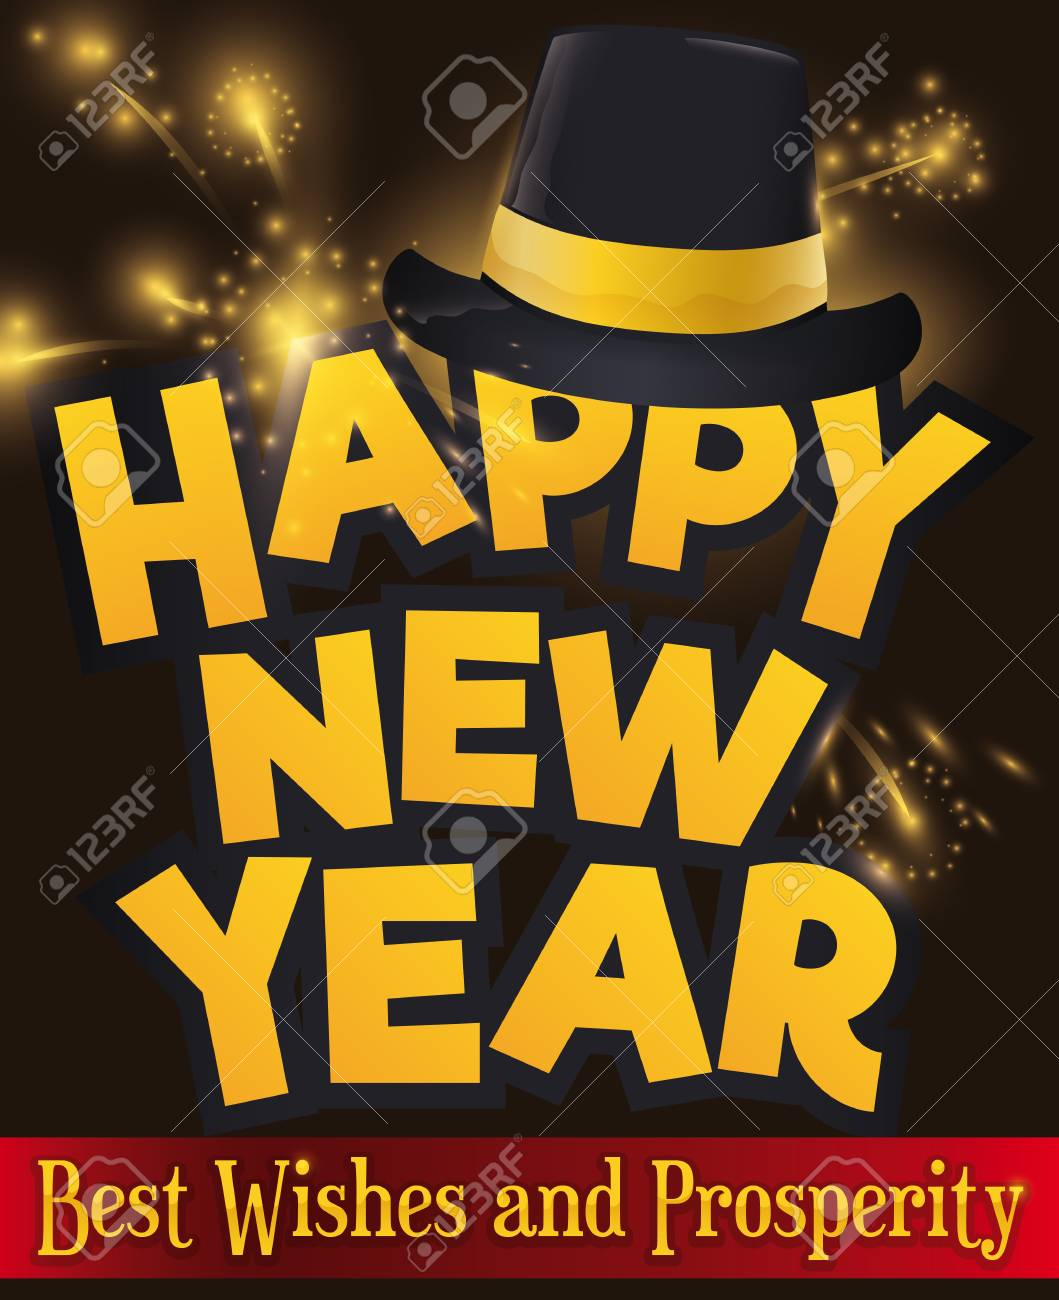 poster with greetings and a black hat over fireworks display